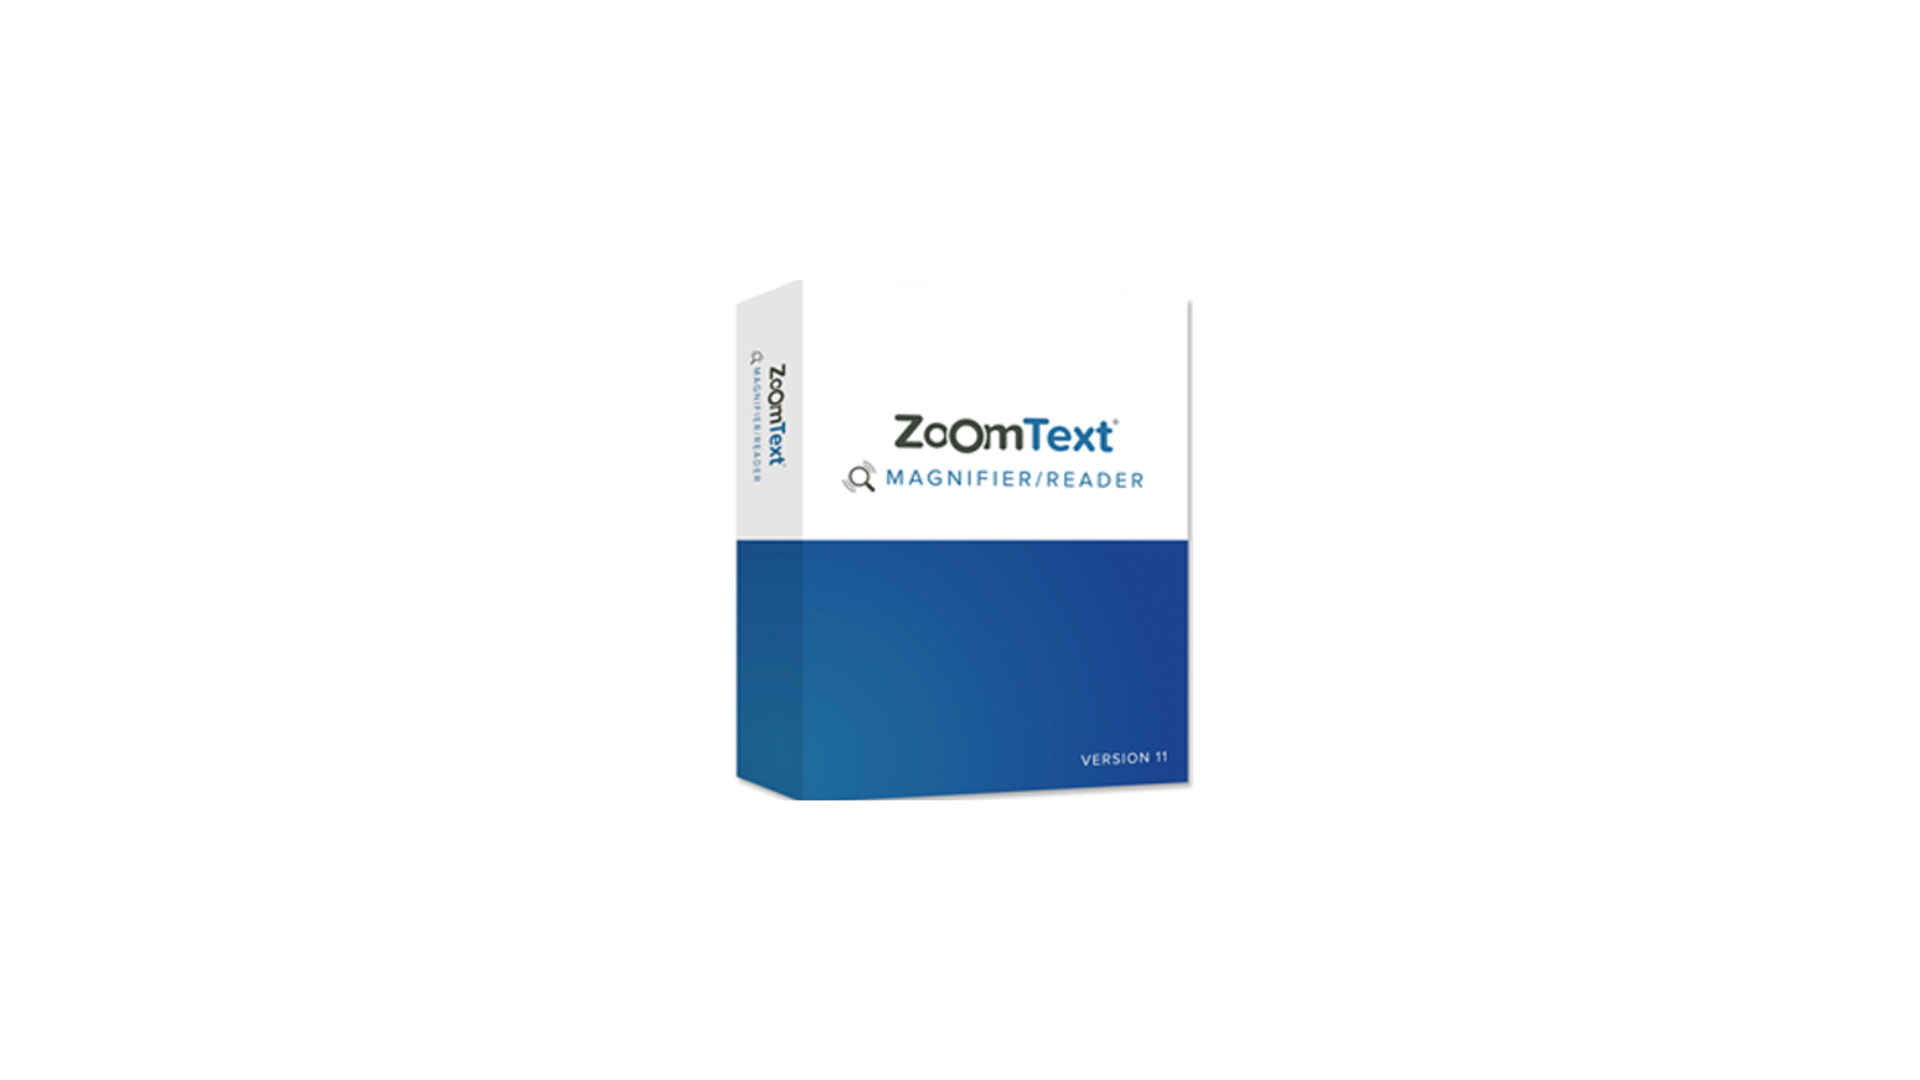 Picture of ZoomText Magnifier/Reader Box.